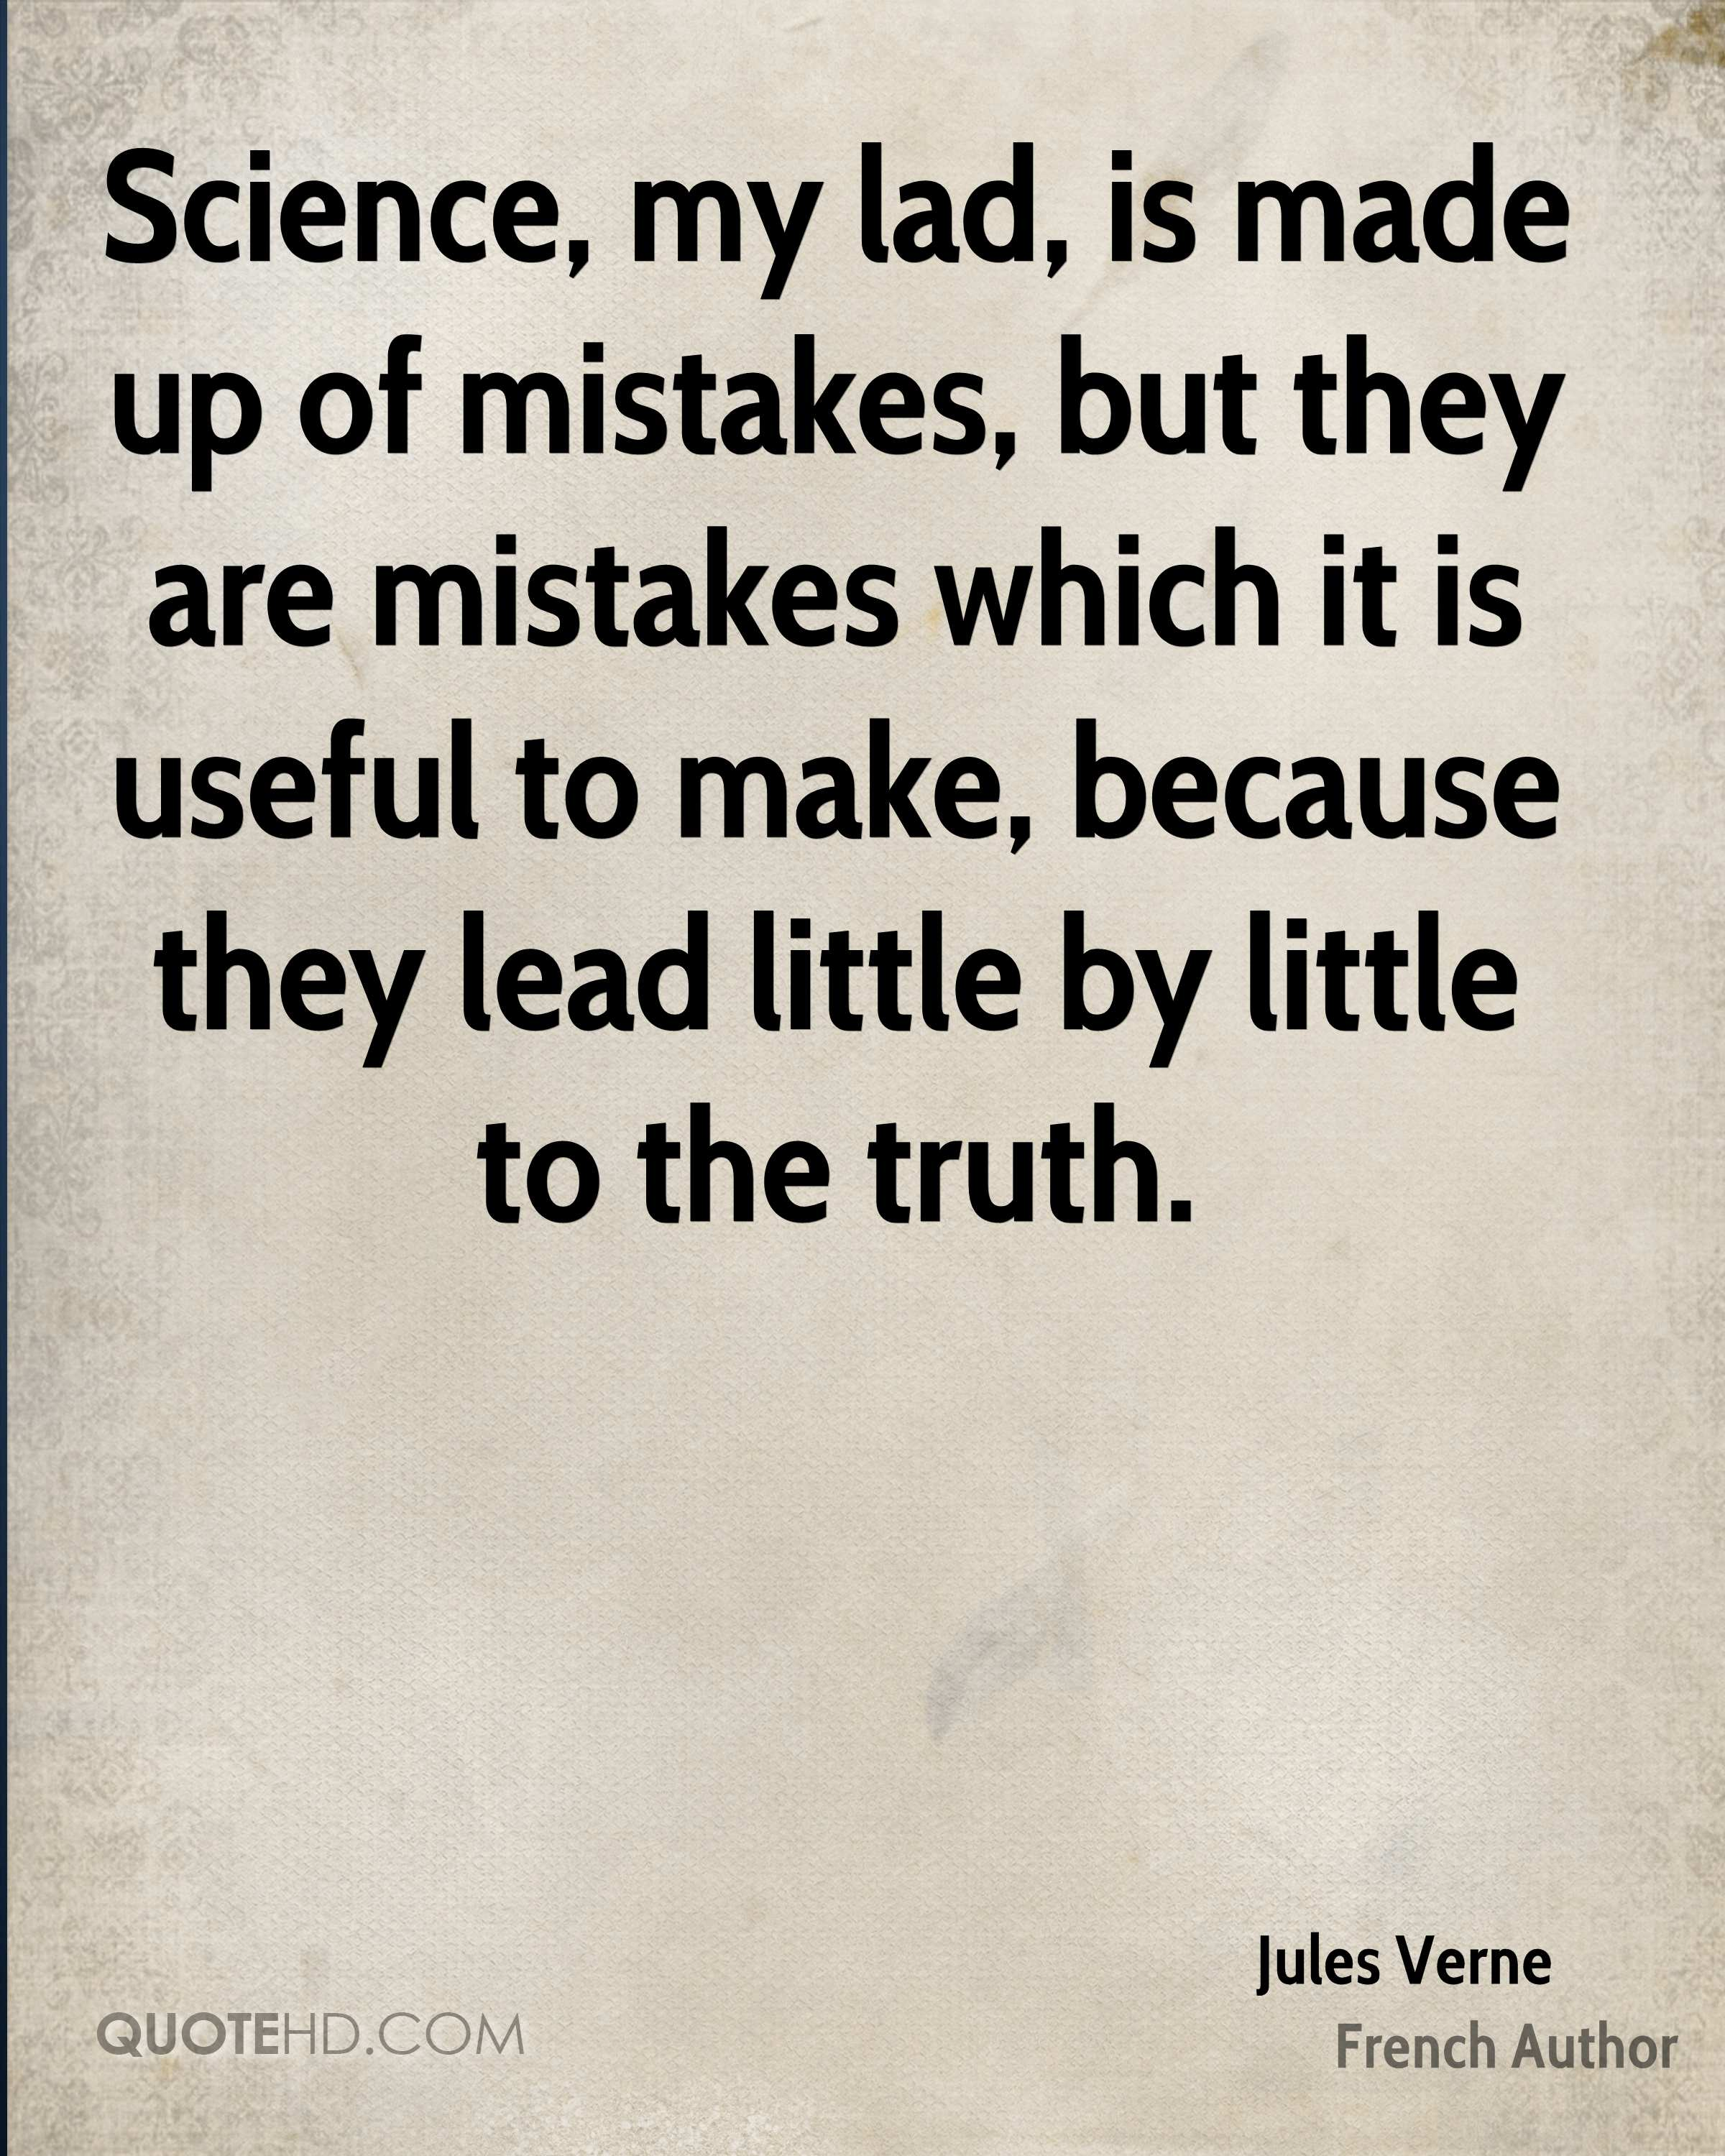 Science, my lad, is made up of mistakes, but they are mistakes which it is useful to make, because they lead little by little to the truth.